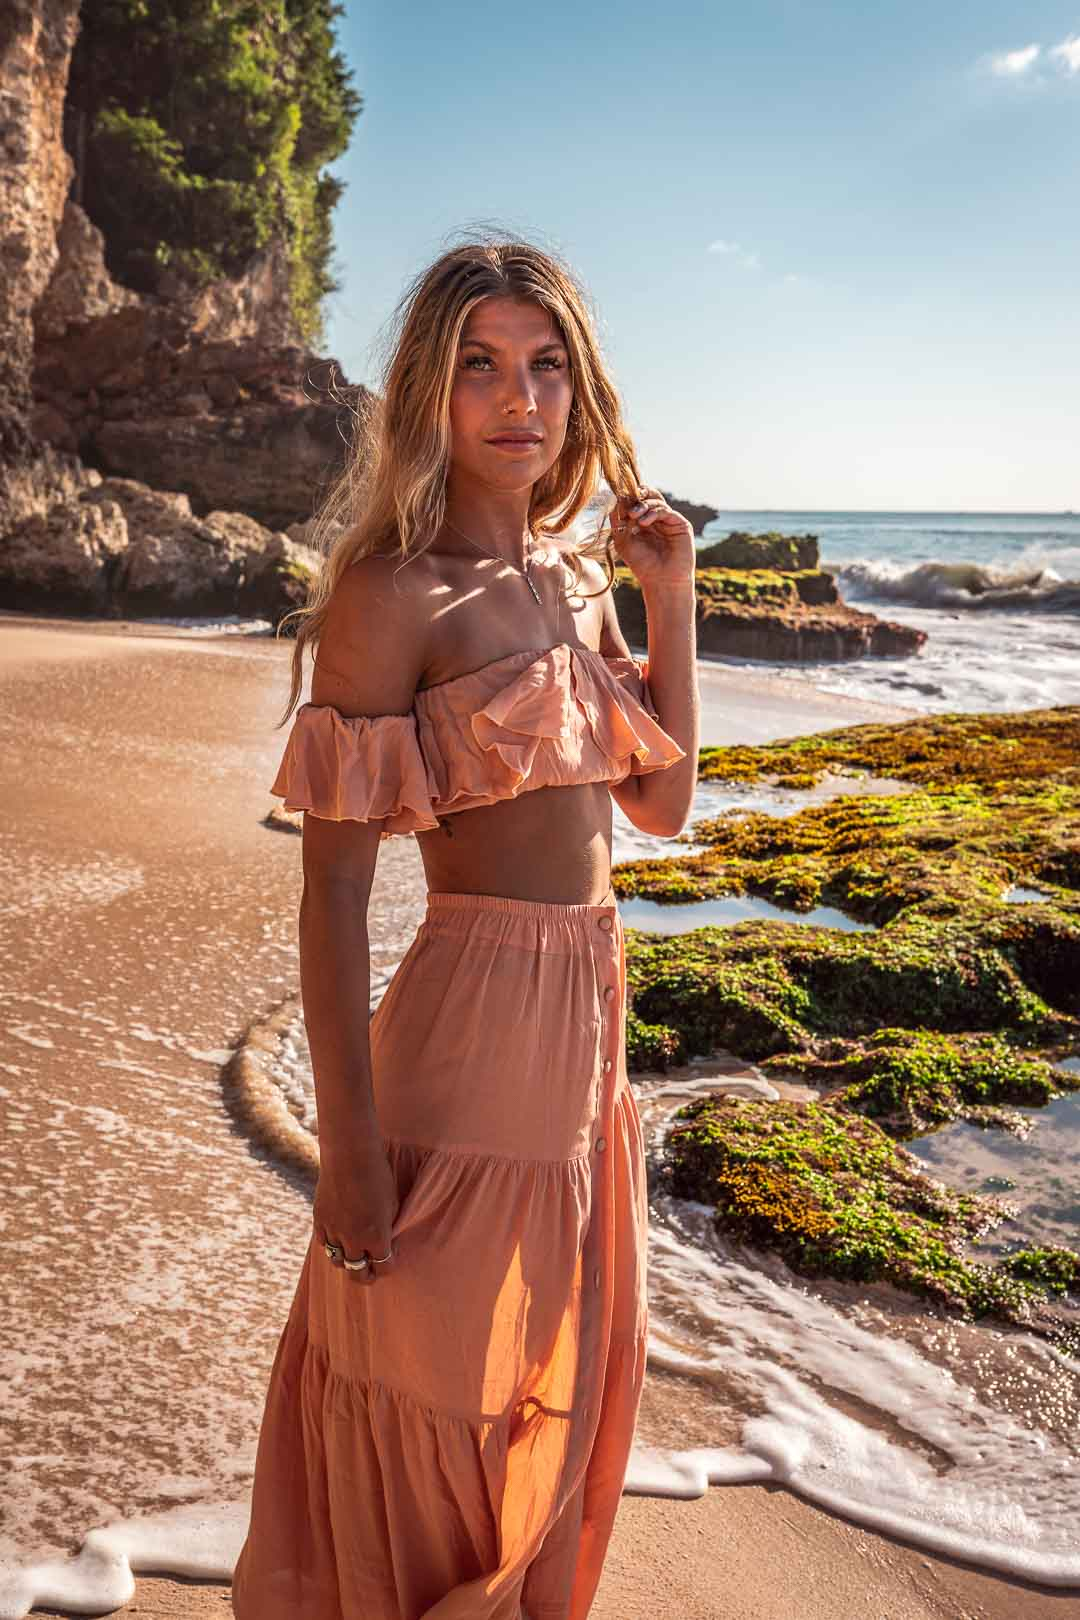 Photograph of a model in a pink dress on the beach